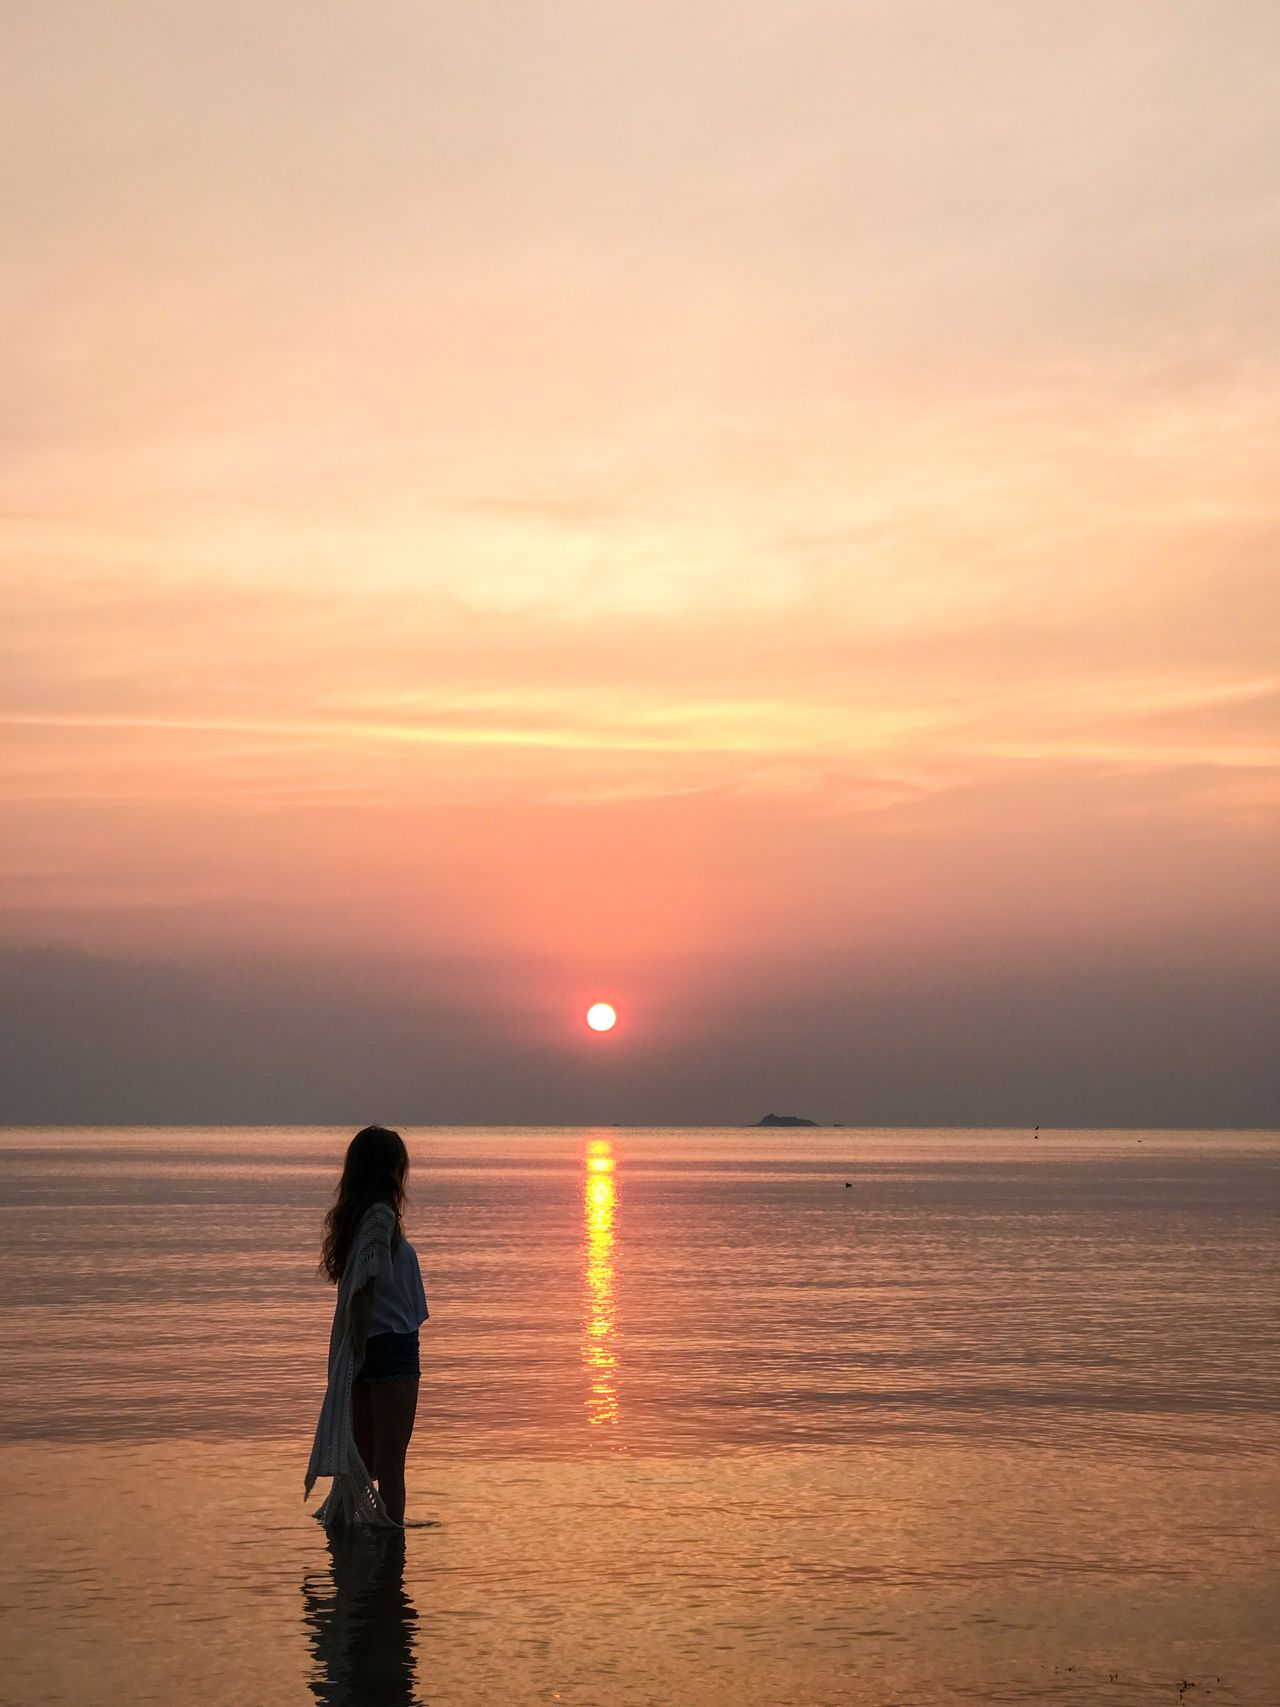 Adult Adults Only Beach Beauty In Nature Colors Horizon Over Water Nature Nature One Person One Woman Only Only Women Outdoors People Real People Relaxation Scenics Sea Silhouette Sky Standing Sun Sunset Tourism Tranquility Water